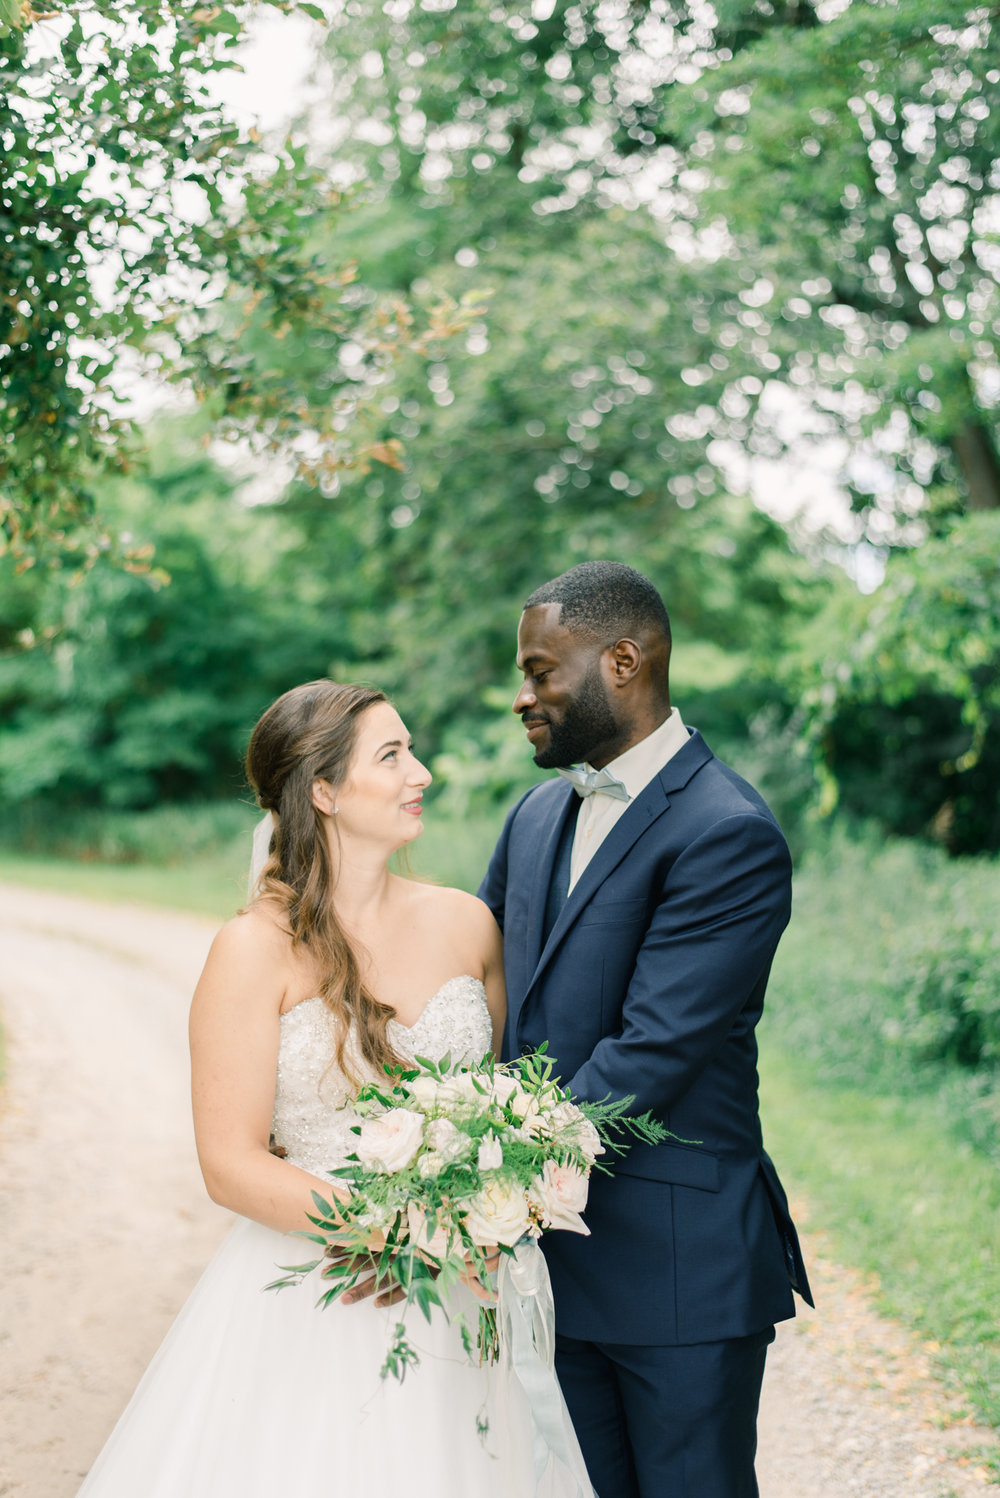 Wedding Photographer in Cambridge